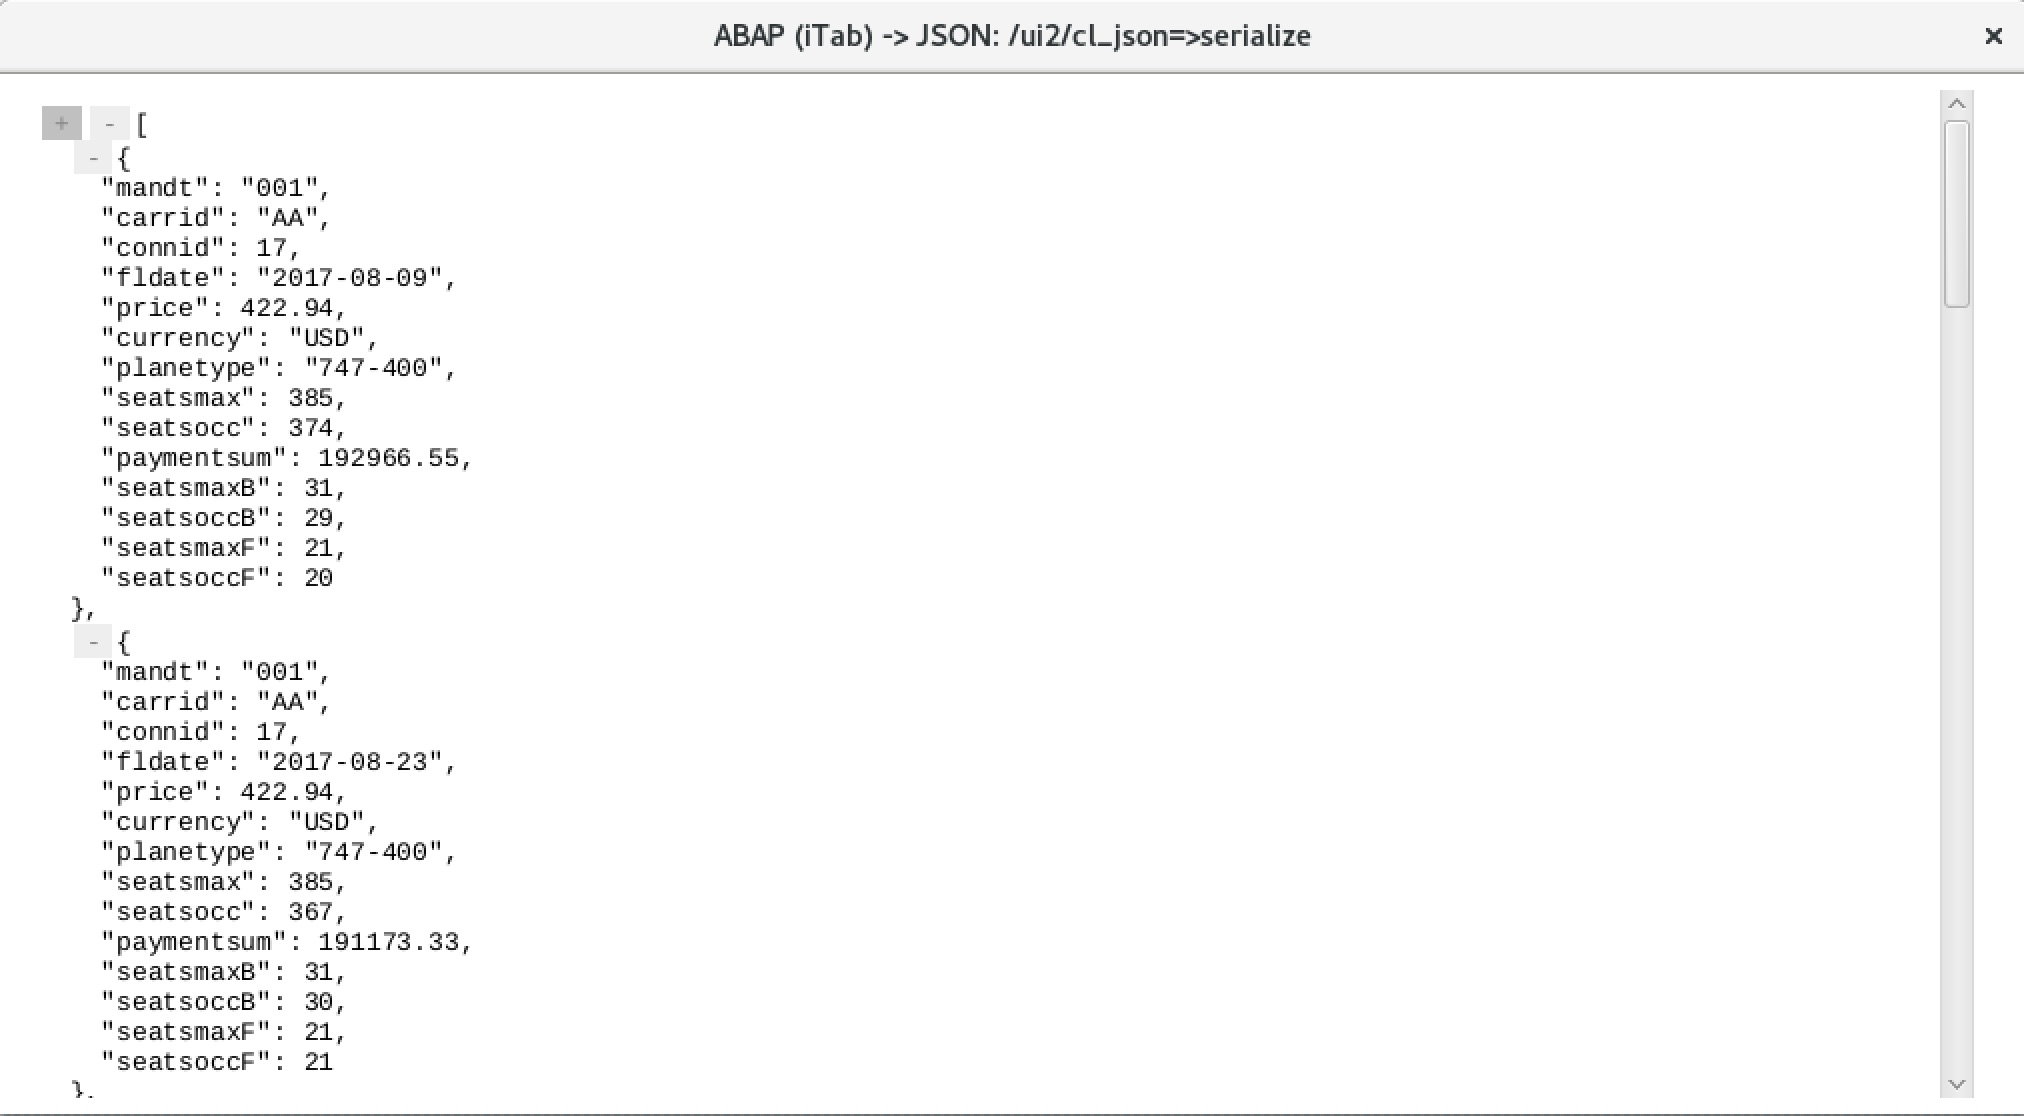 ABAP to JSON and JSON to ABAP